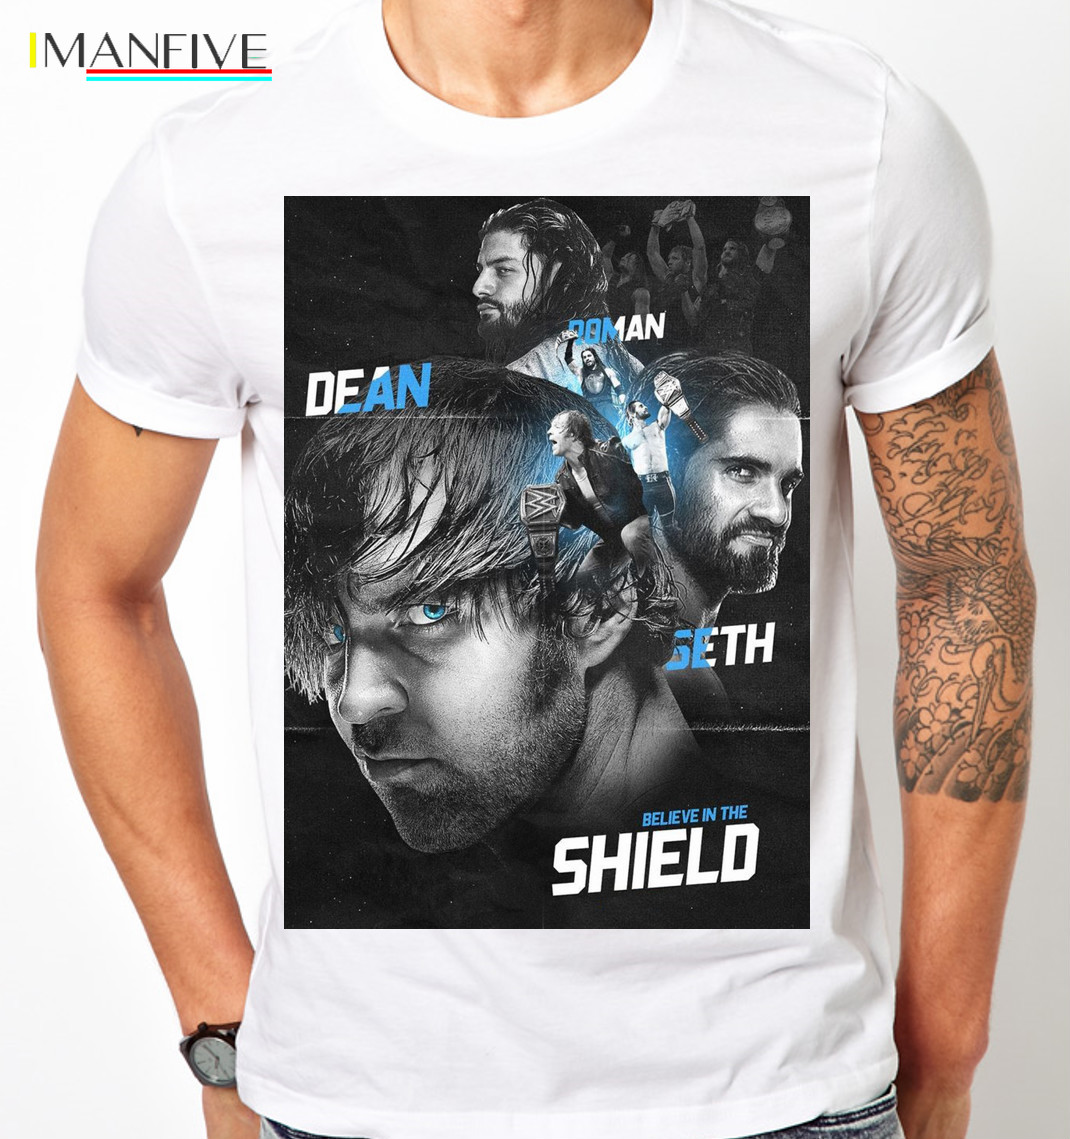 THE SHIELD REUNITED ROMAN REIGNS DEAN AMBROSE SETH ROLLINS MENS KIDS T Shirt 100 Cotton Short Sleeve O Neck Tops Tee Shirts in T Shirts from Men 39 s Clothing